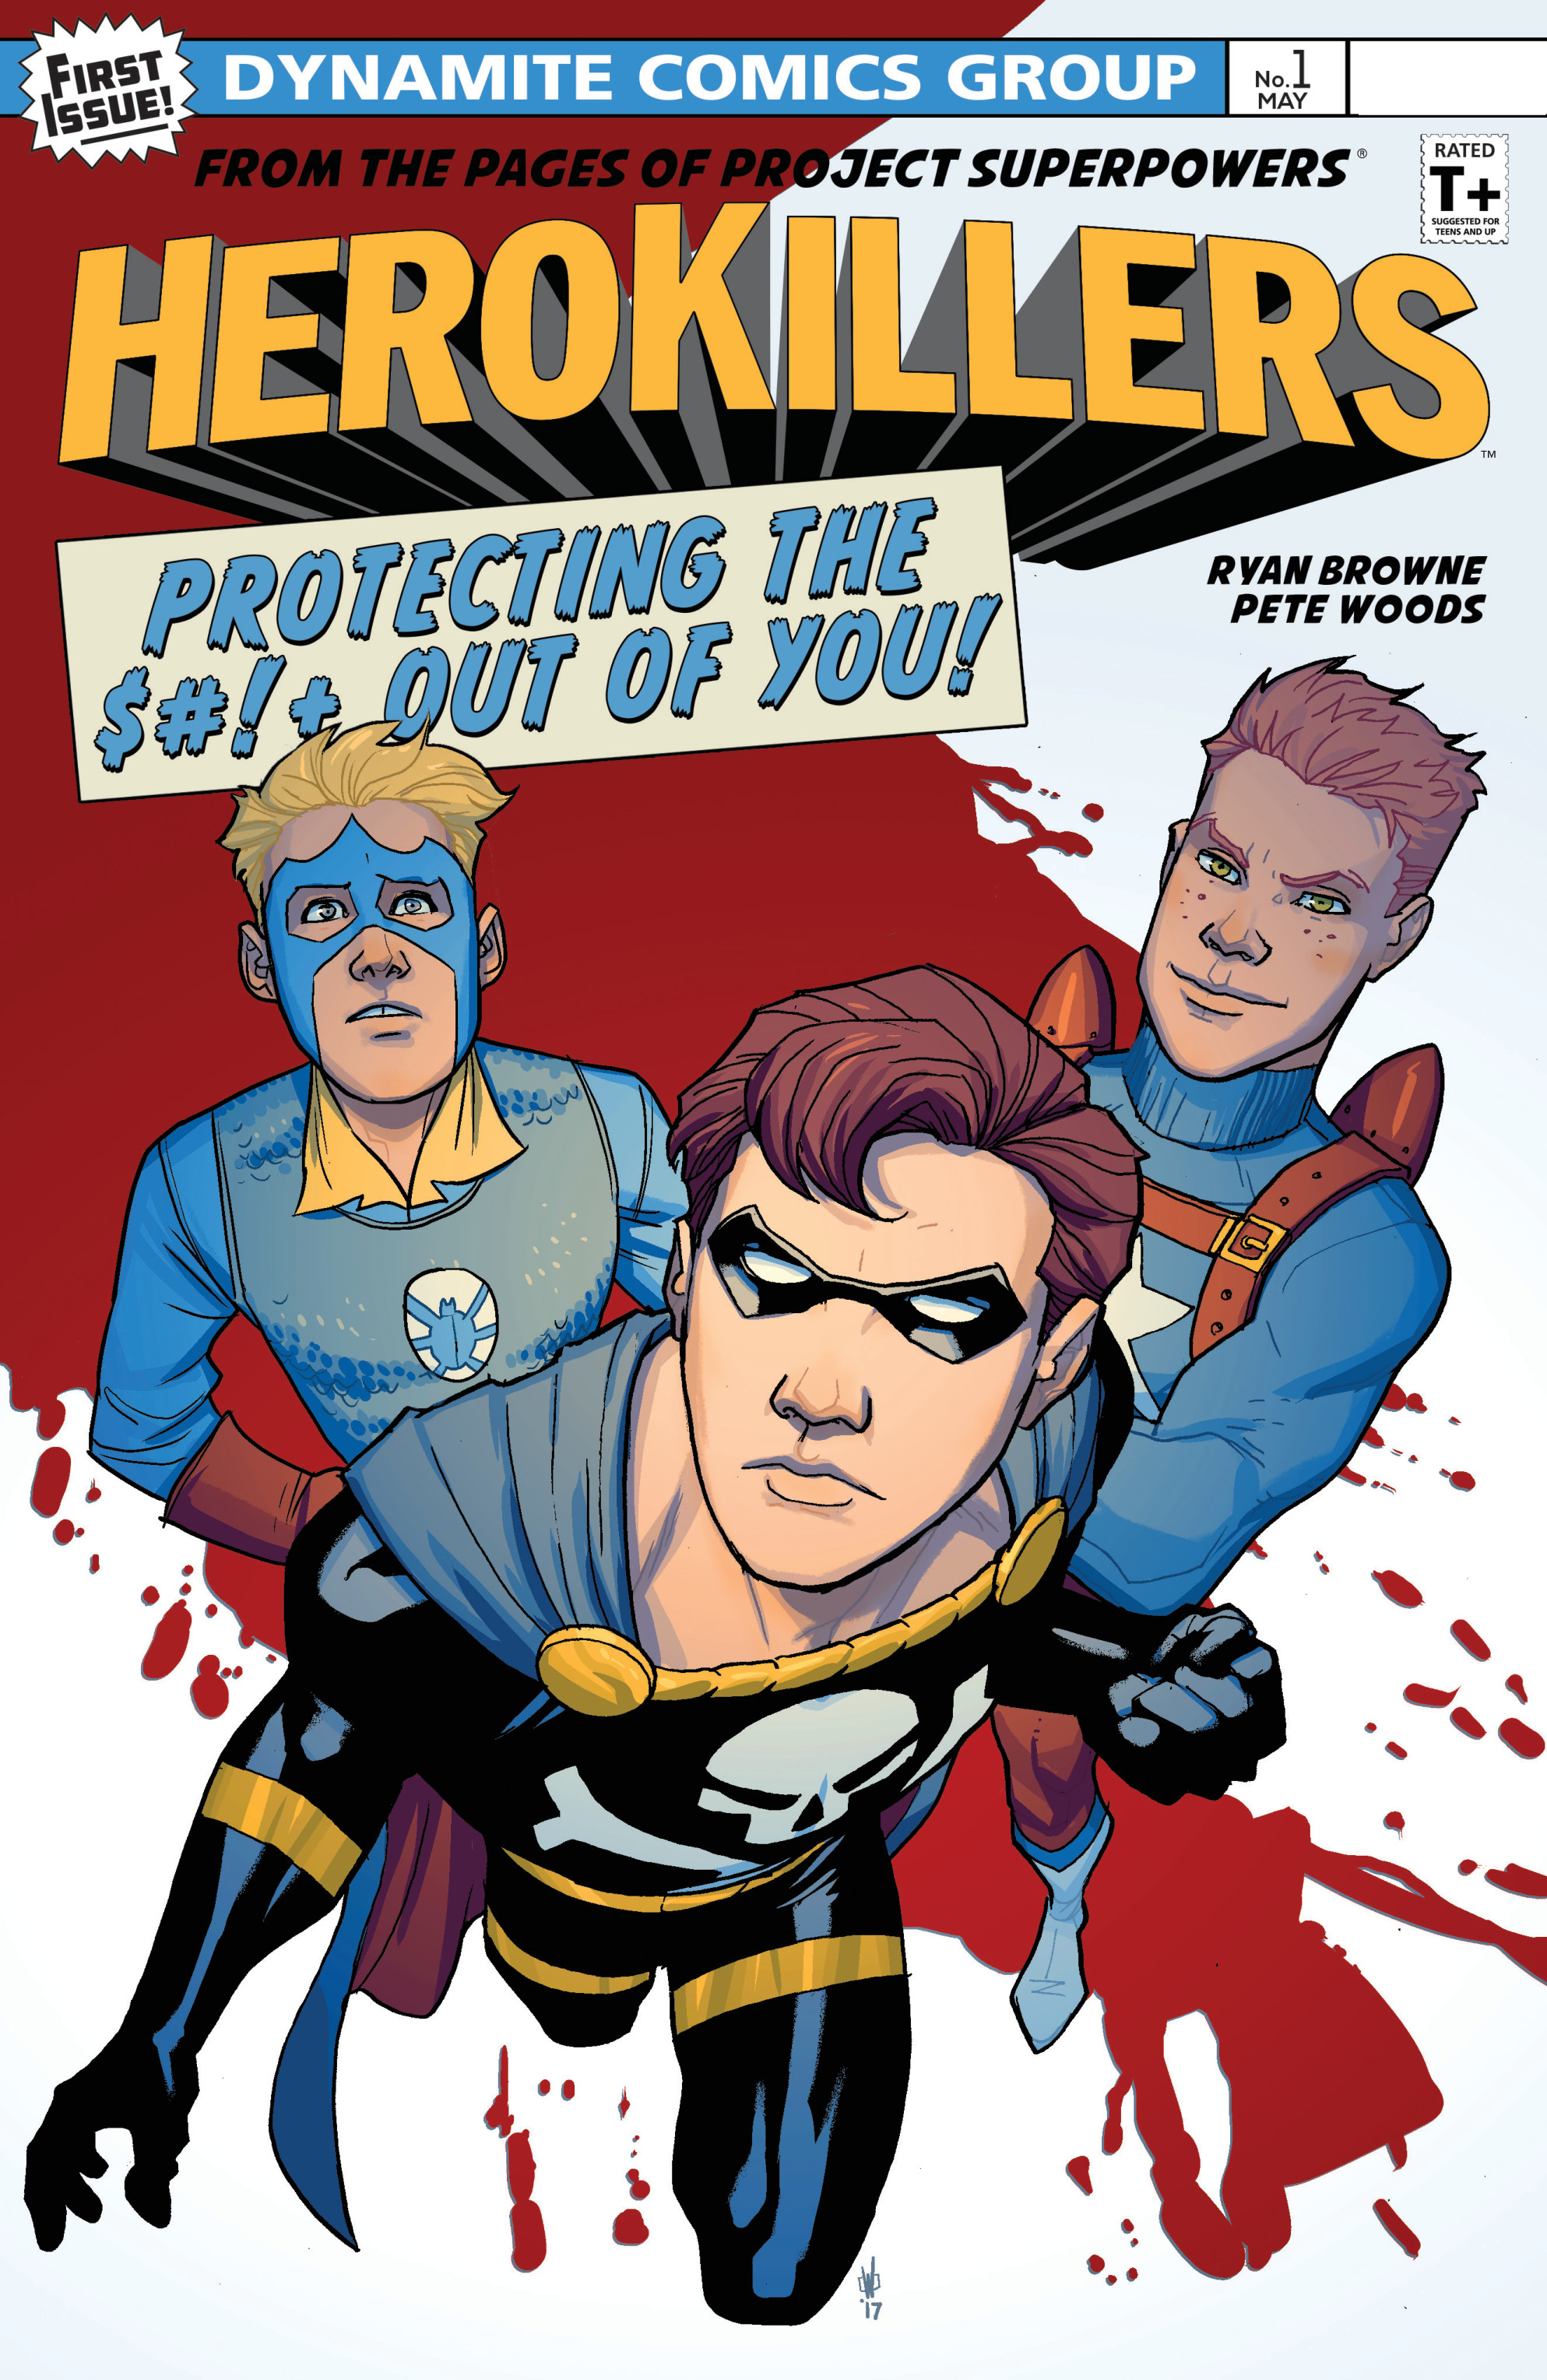 Read online Project Superpowers: Hero Killers comic -  Issue #1 - 1